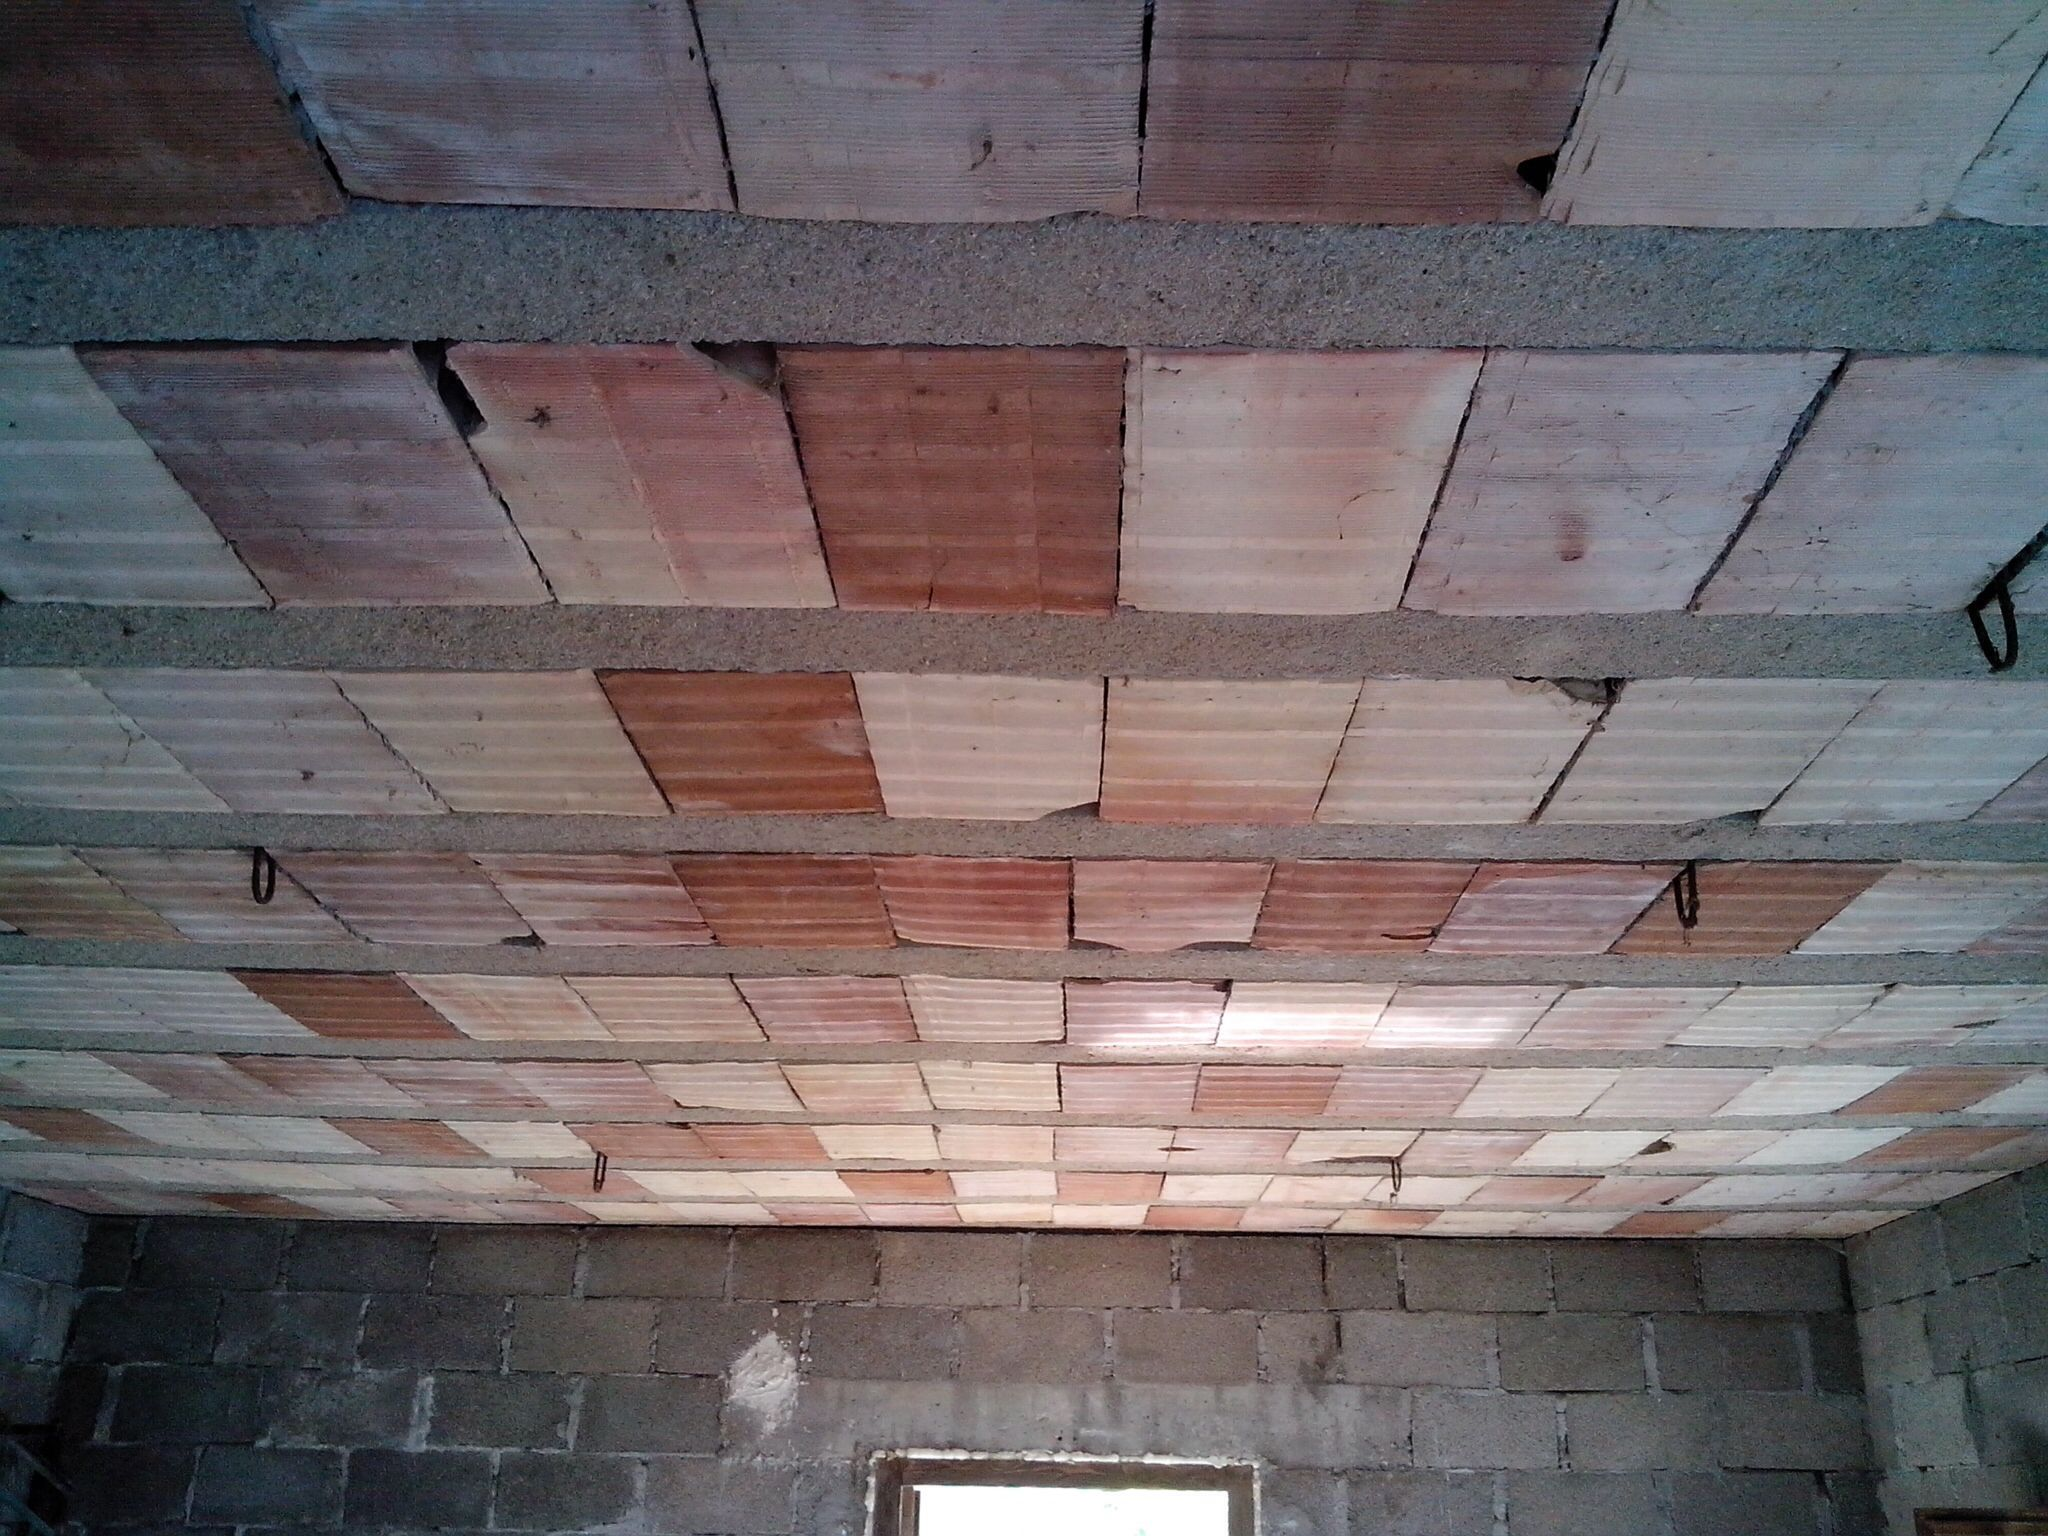 The Ceiling Made Of Terracotta Building Blocks And Concrete Beams Beams Building Blocks Terracotta